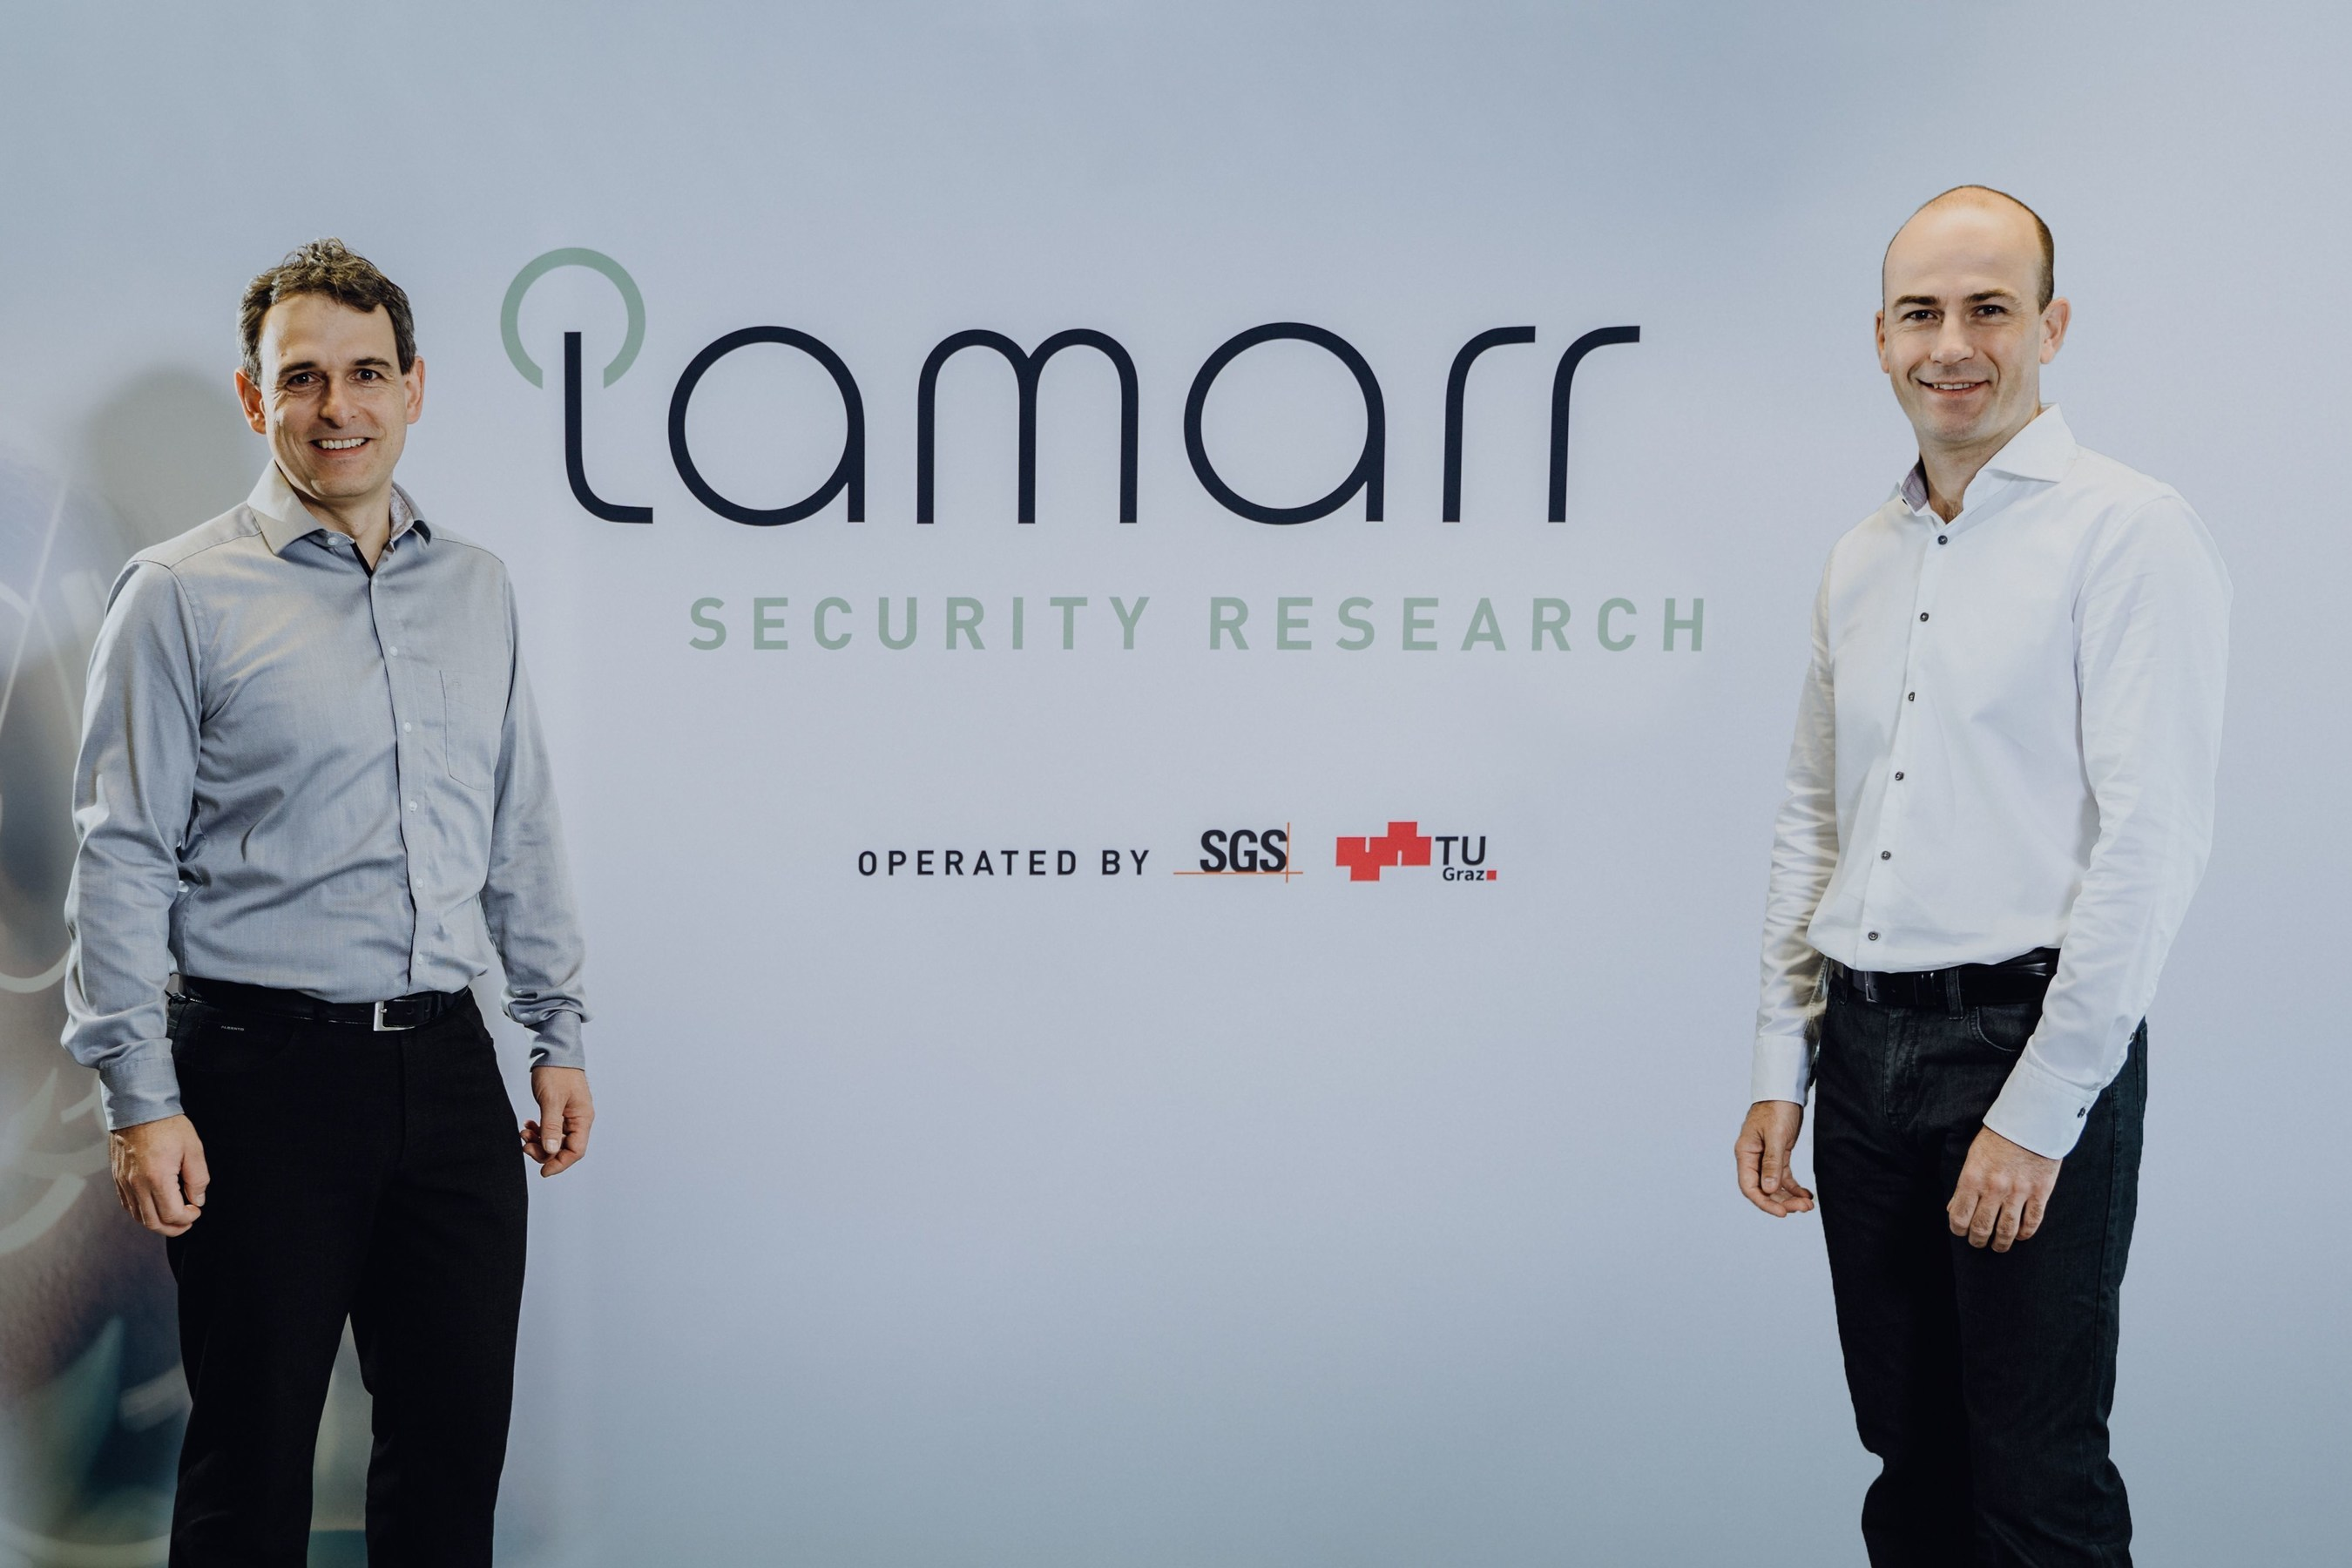 Lamarr Security Research